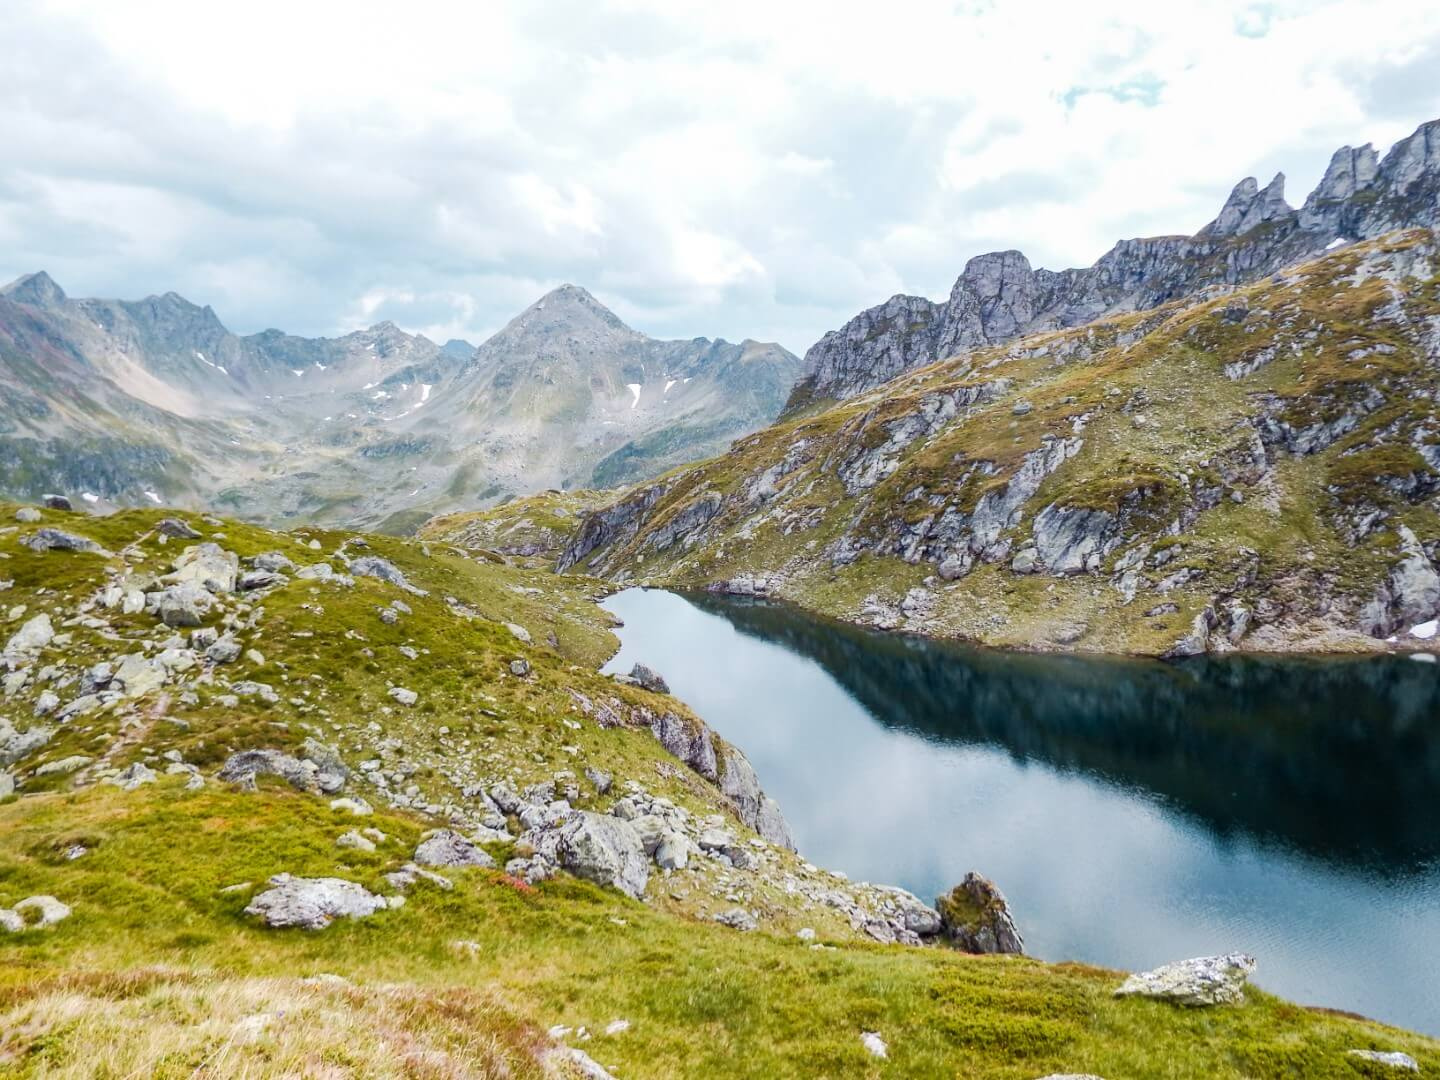 Hiking Schladminger Tauern High Trail, Austrian Alps - Best places to visit in Austria